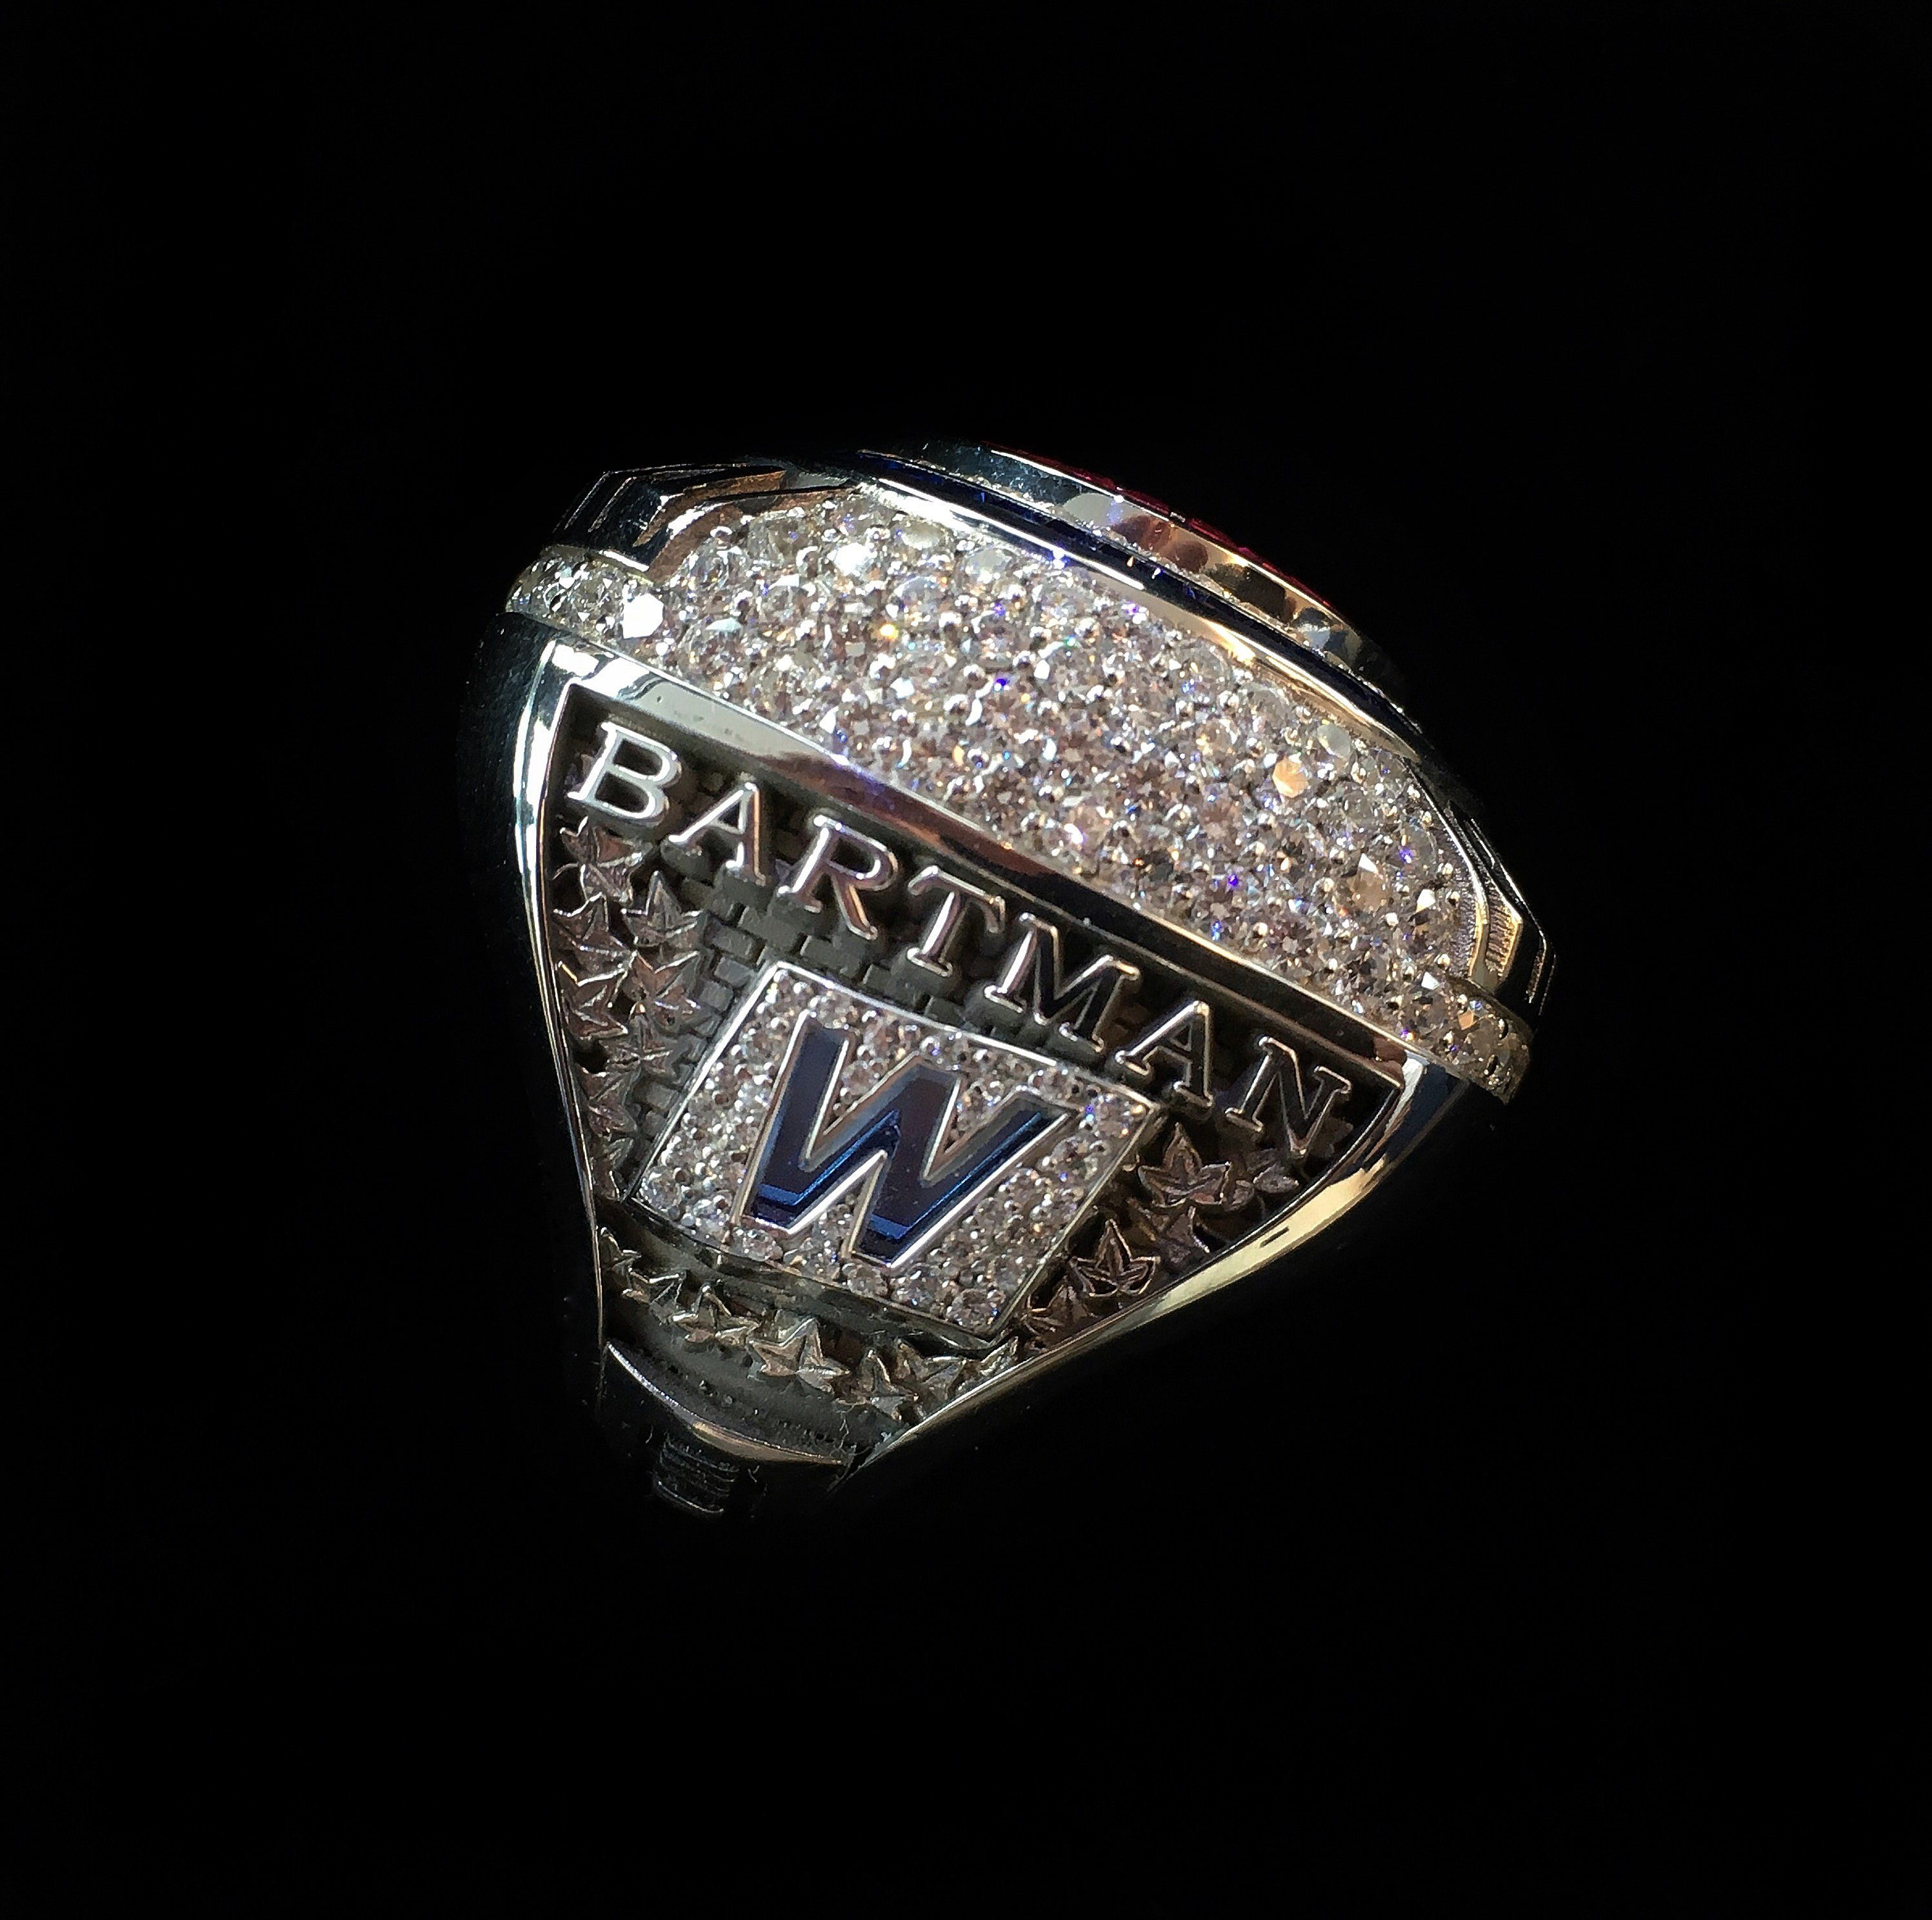 "With 214 5.5-karat diamonds, 33 rubies and 46 sapphires, the 14-karat white gold World Series Championship ring is <a href=""h"